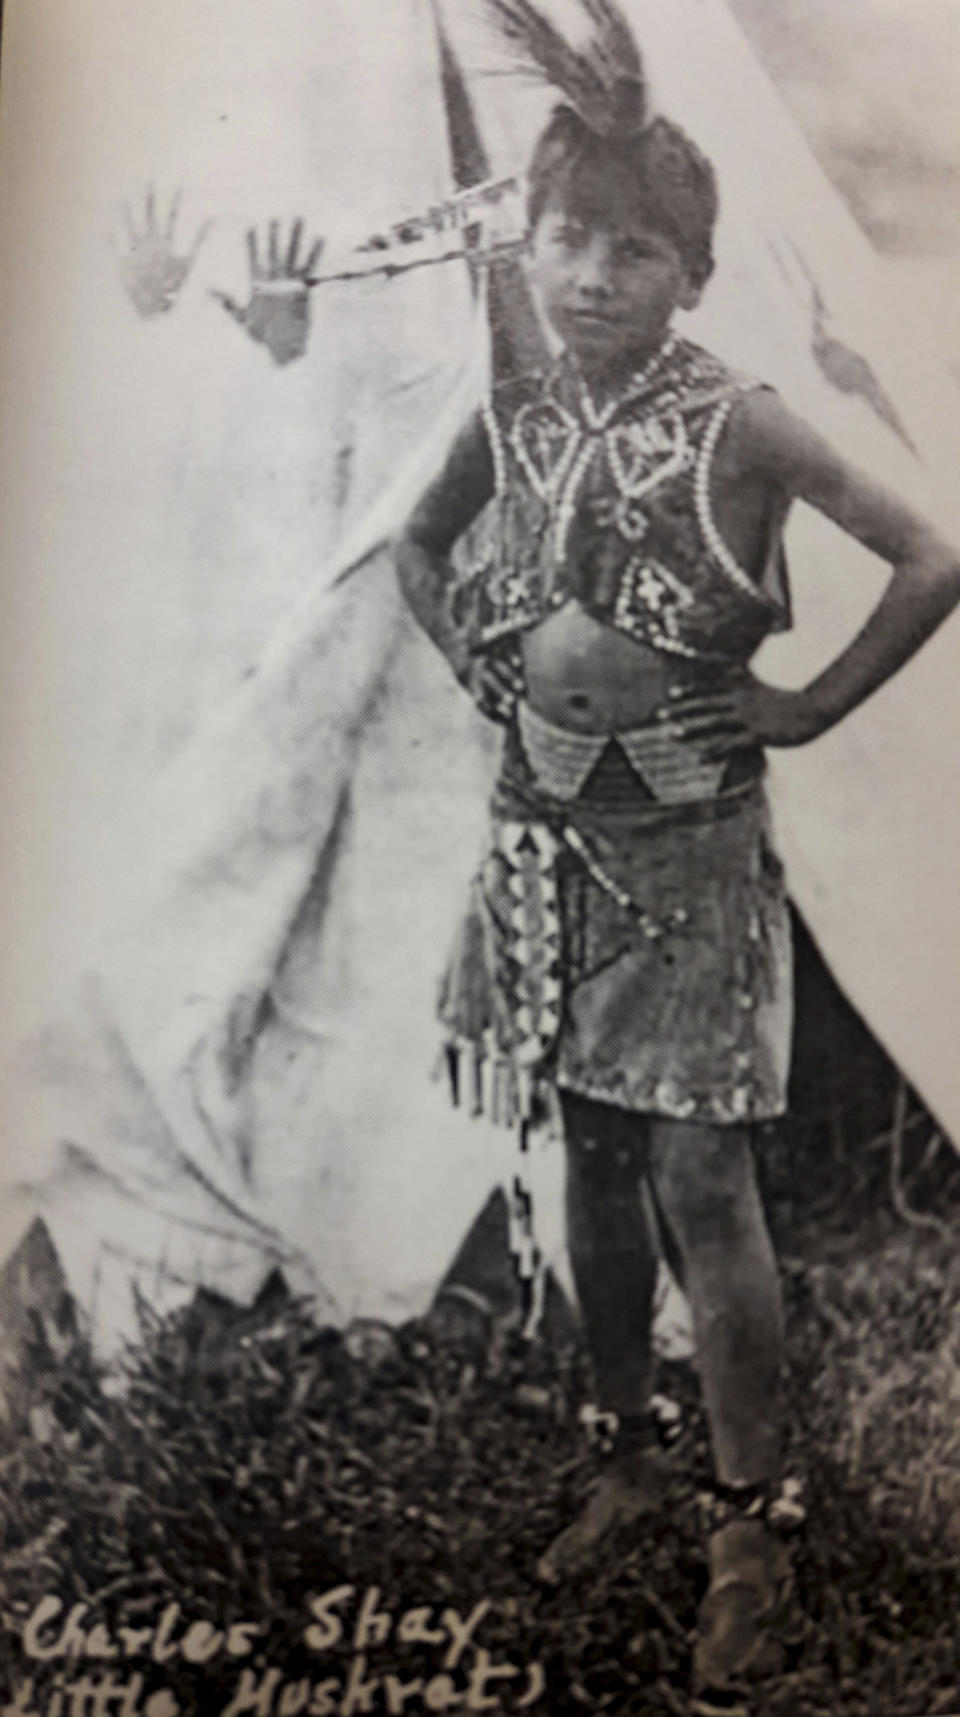 In this undated image provided by the Charles Shay Family Archive, Charles Norman Shay poses in native dress as a young boy in Indian Island, Maine. Shay, a D-Day veteran, was a medic who on June 6, 1944, landed on Omaha Beach, where he helped drag wounded soldiers out of the rising tide. (Charles Shay Family Archive via AP)